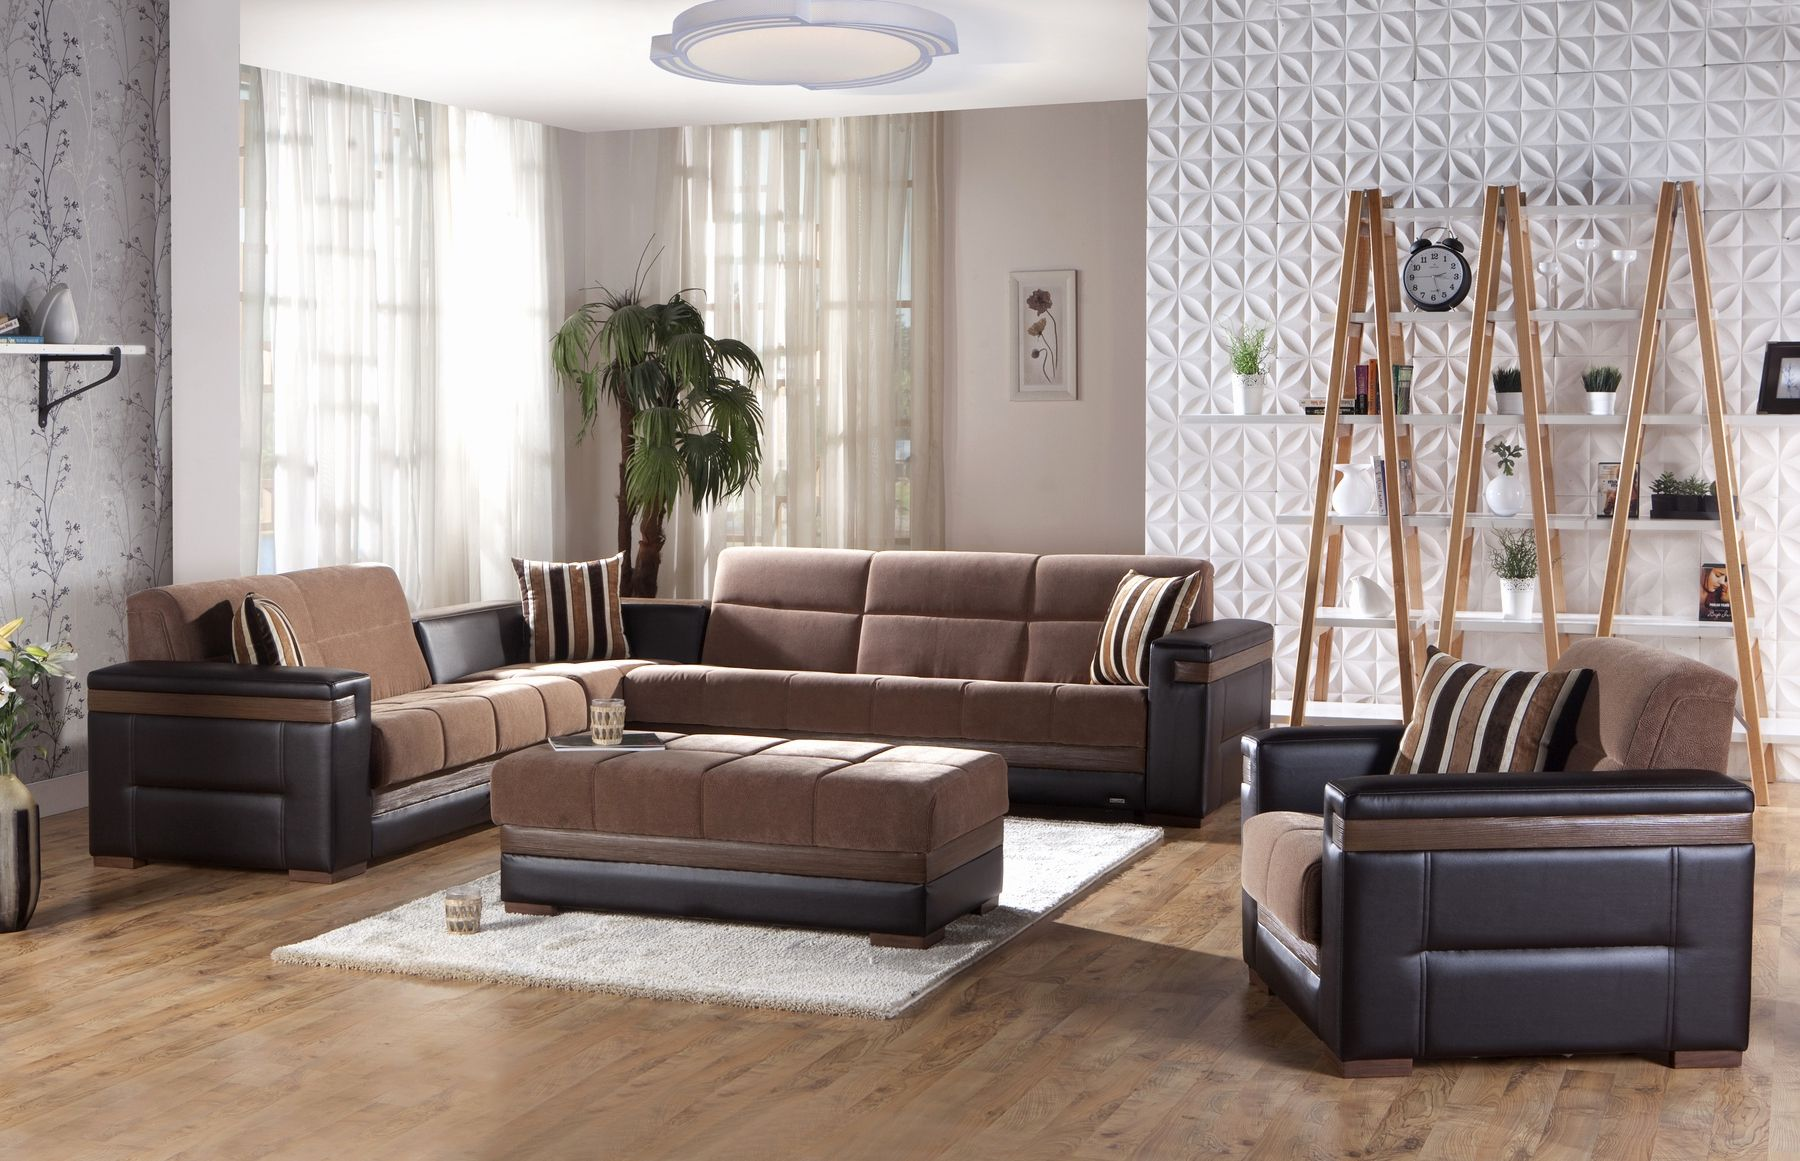 Newest sofa designs Latest Sofa Designs – via